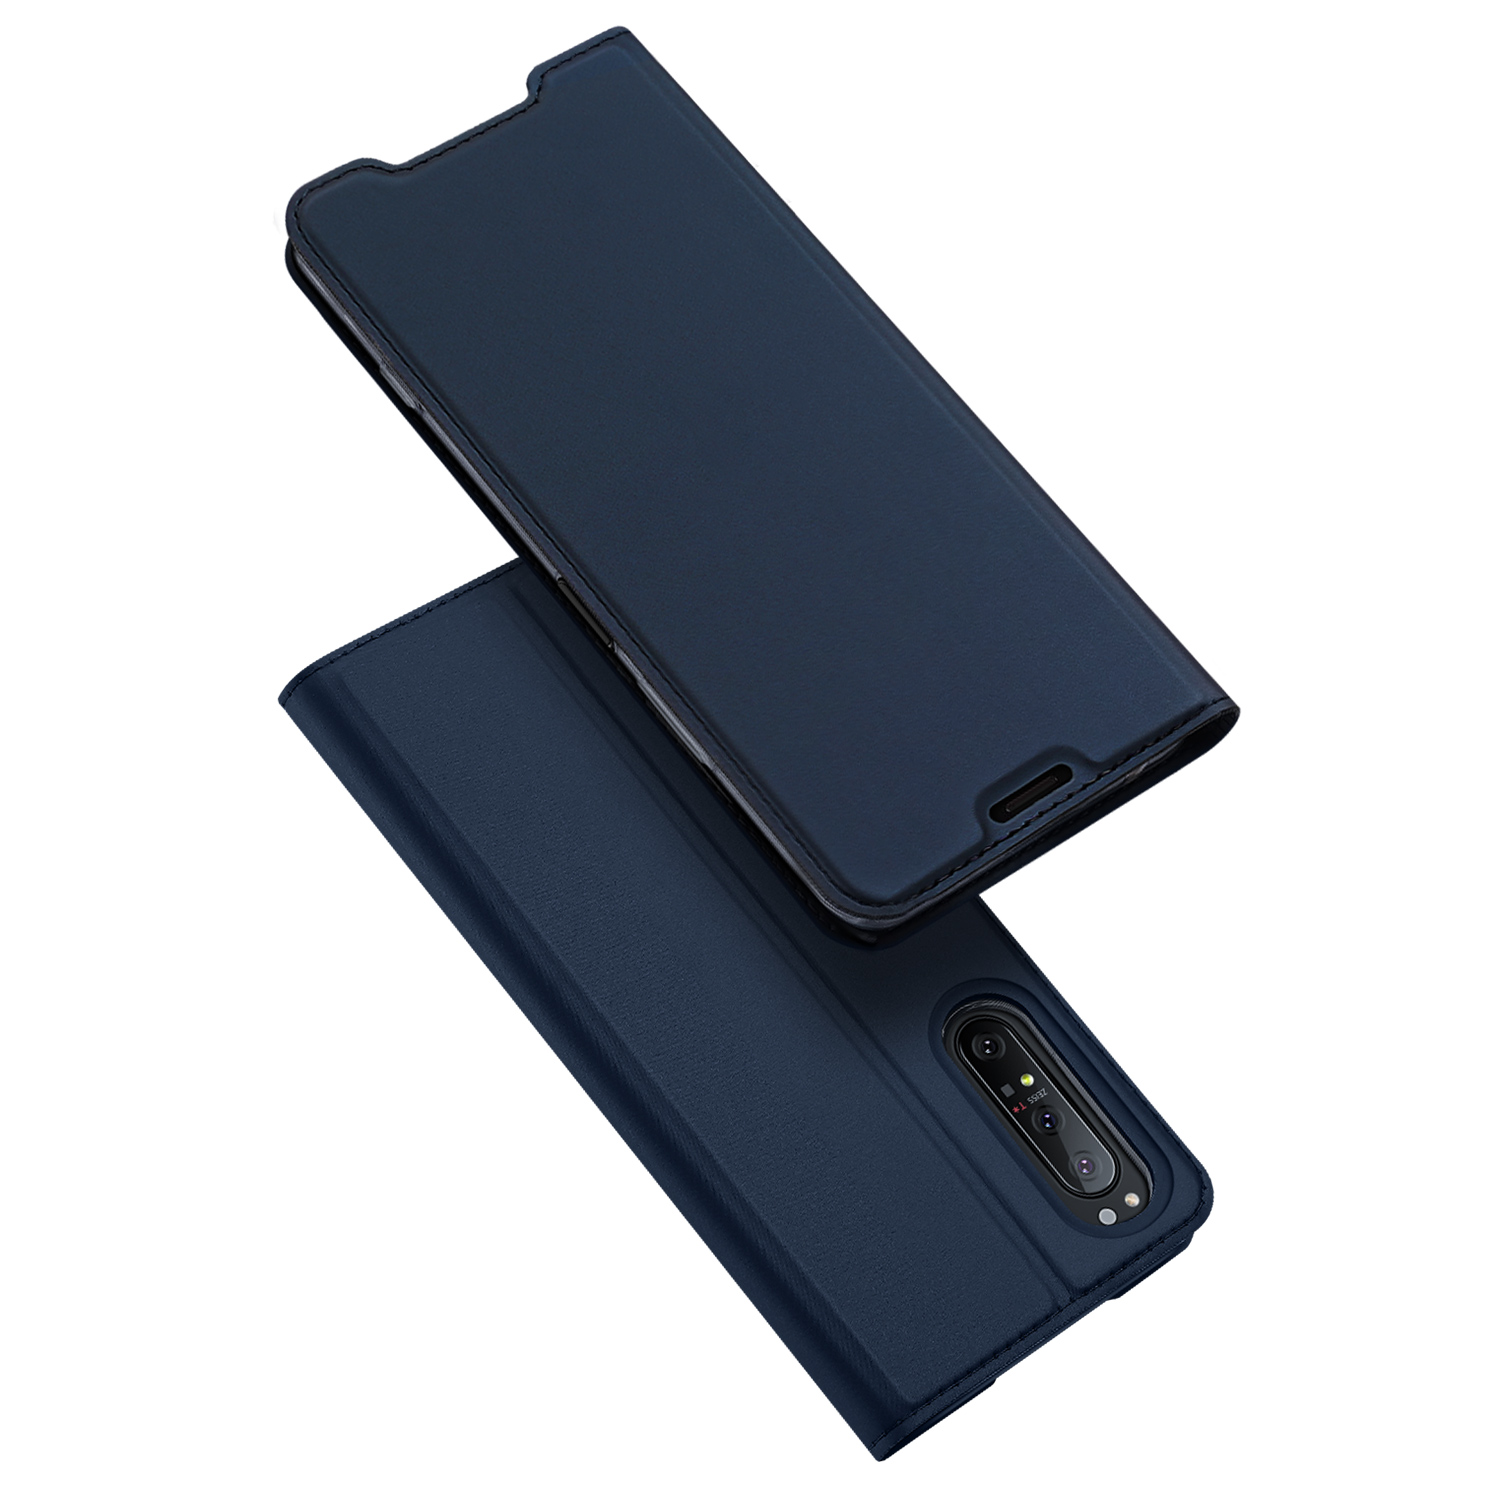 DUX DUCIS For Sony Xperia1 II/Xperia10 II Leather Mobile Phone Cover Magnetic Protective Case Bracket with Cards Slot Royal blue_Sony Xperia1 II